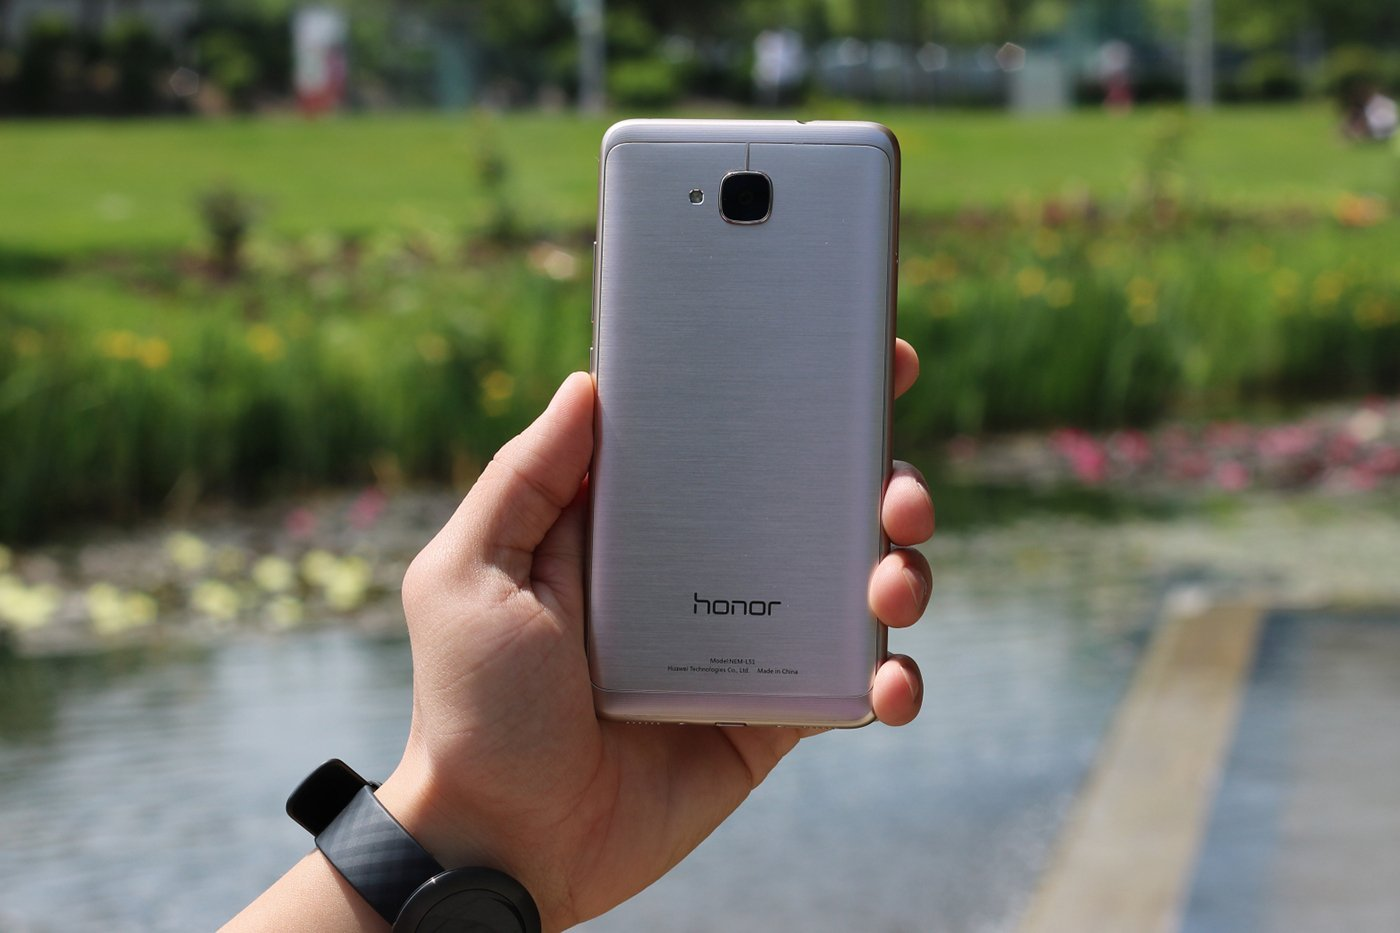 Tech'spresso : Le Honor 5C officiel, Chrooma Keyboard et le forfait 50 Go de NRJ Mobile